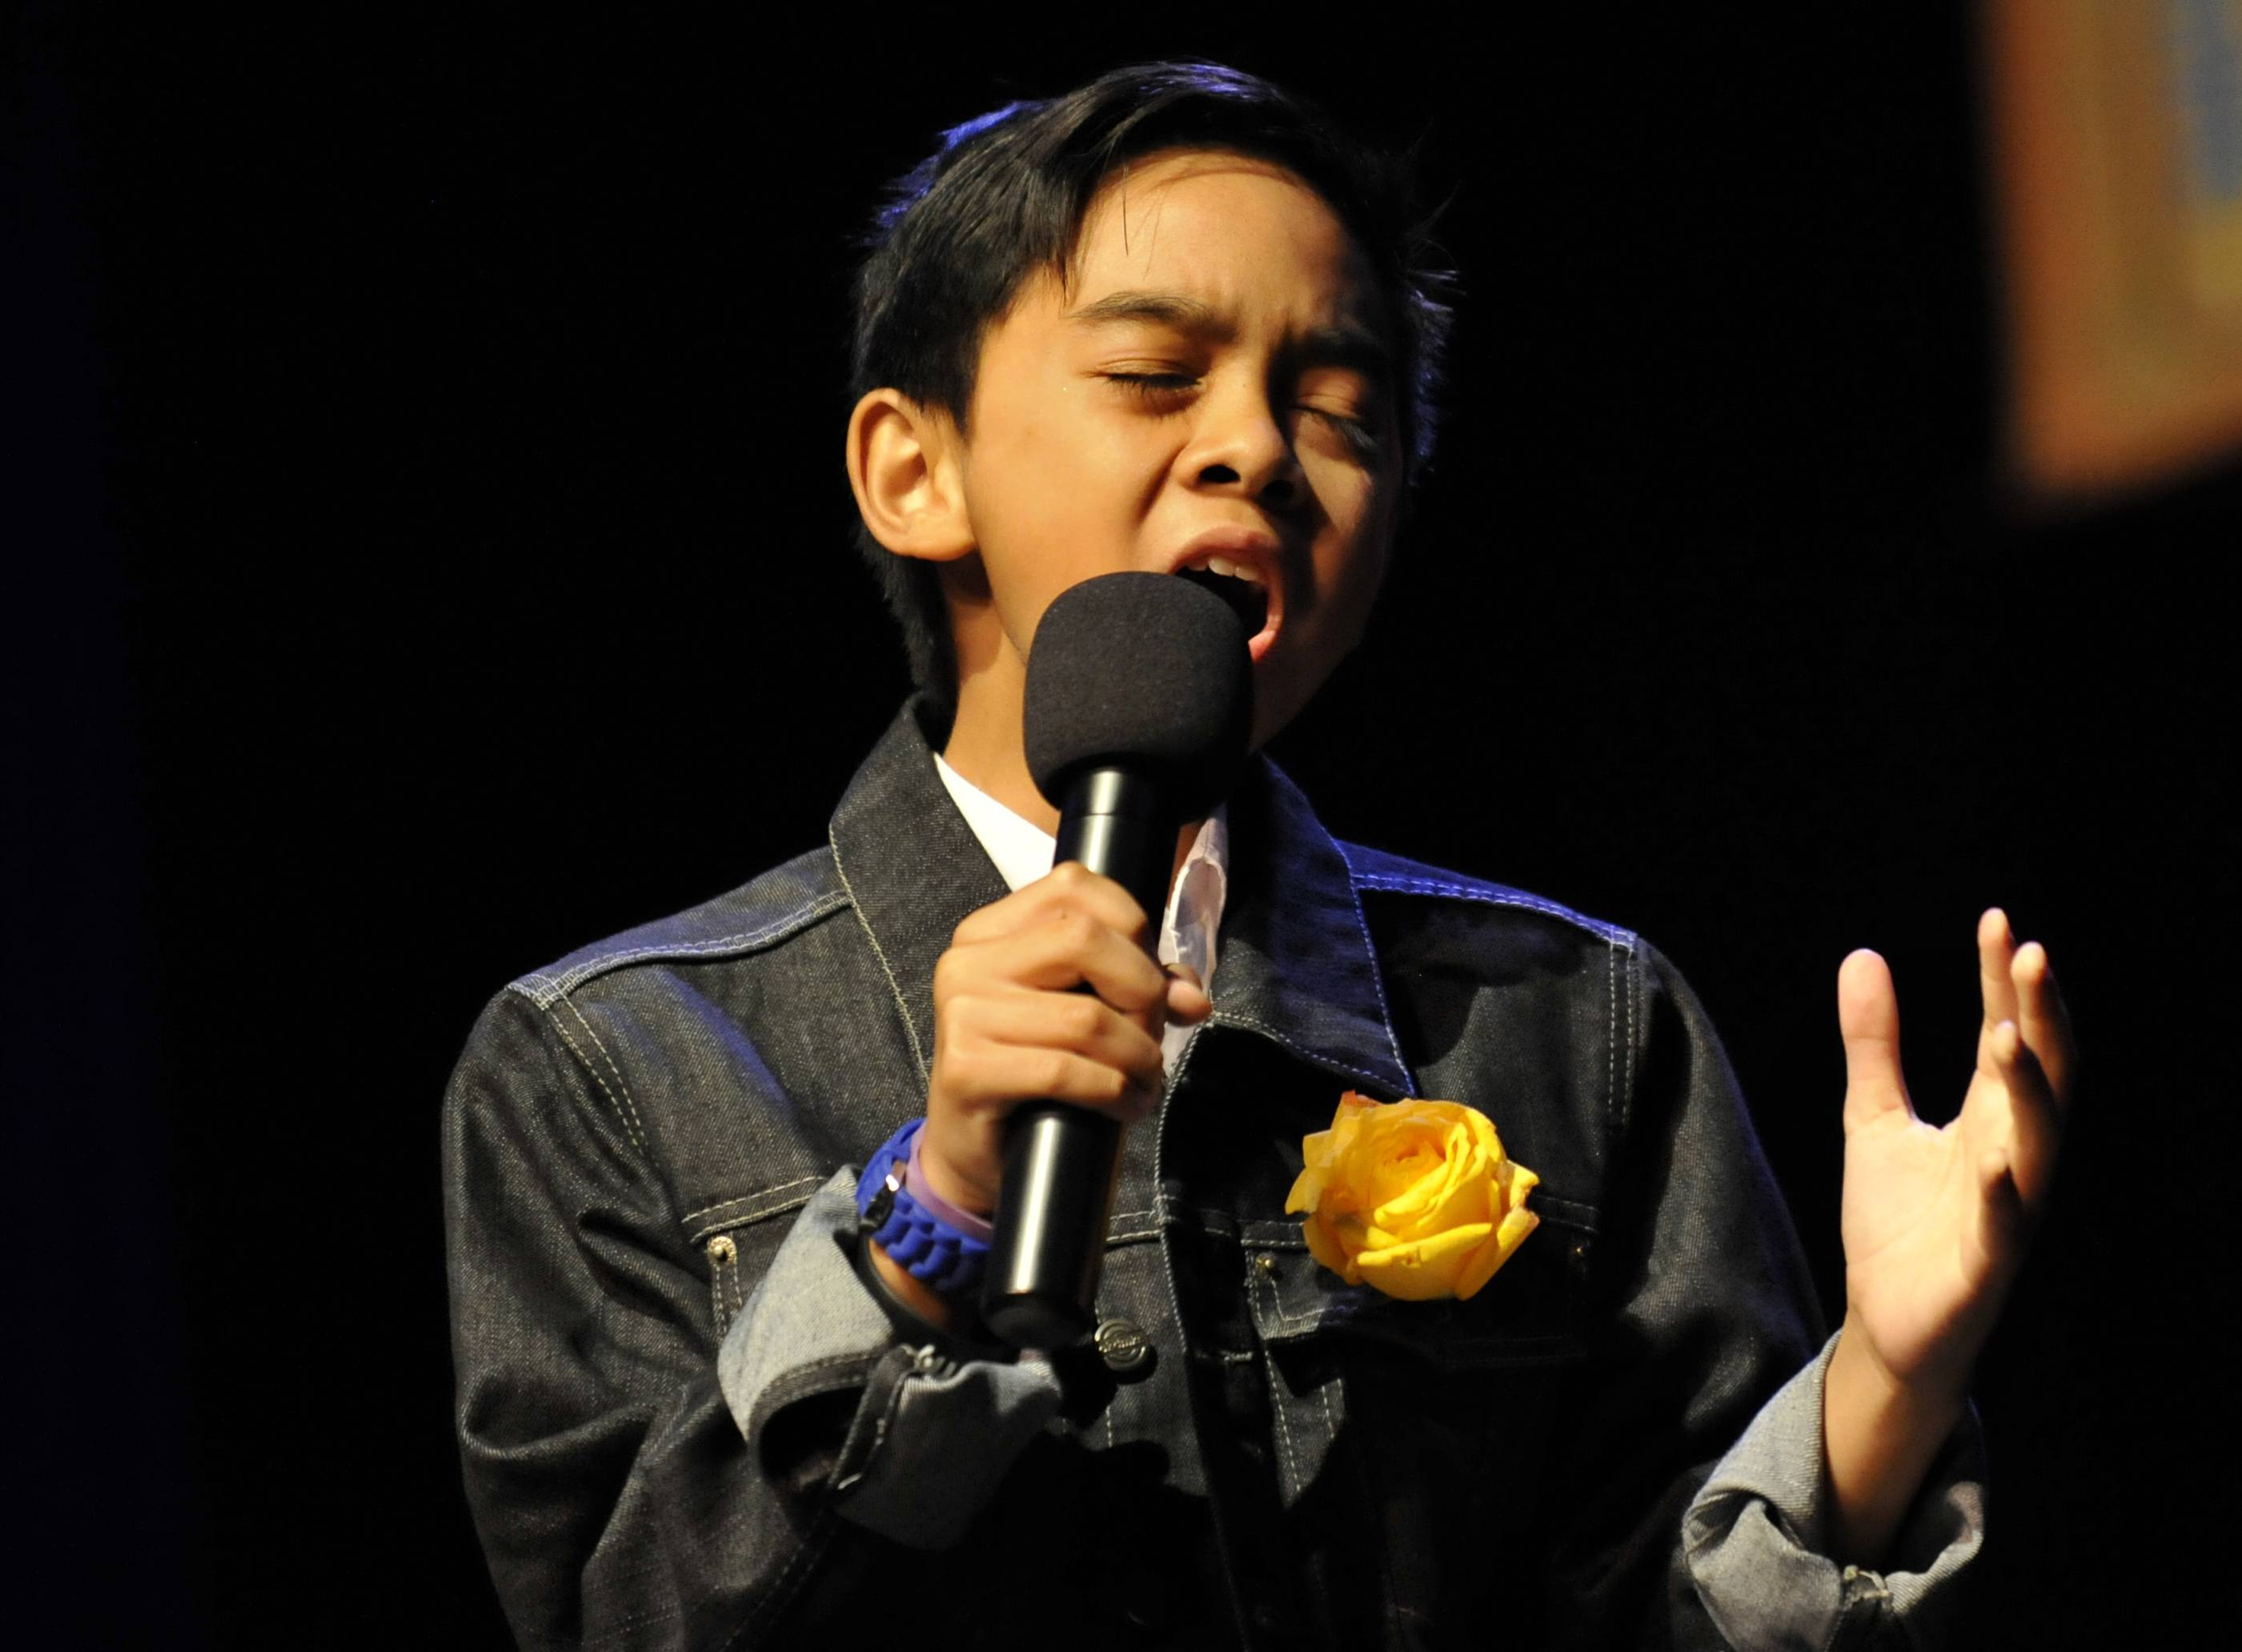 James Agena performs at the Suburban Chicago's Got Talent top 15 competition at Prairie Center for the Arts in Schaumburg on Sunday.